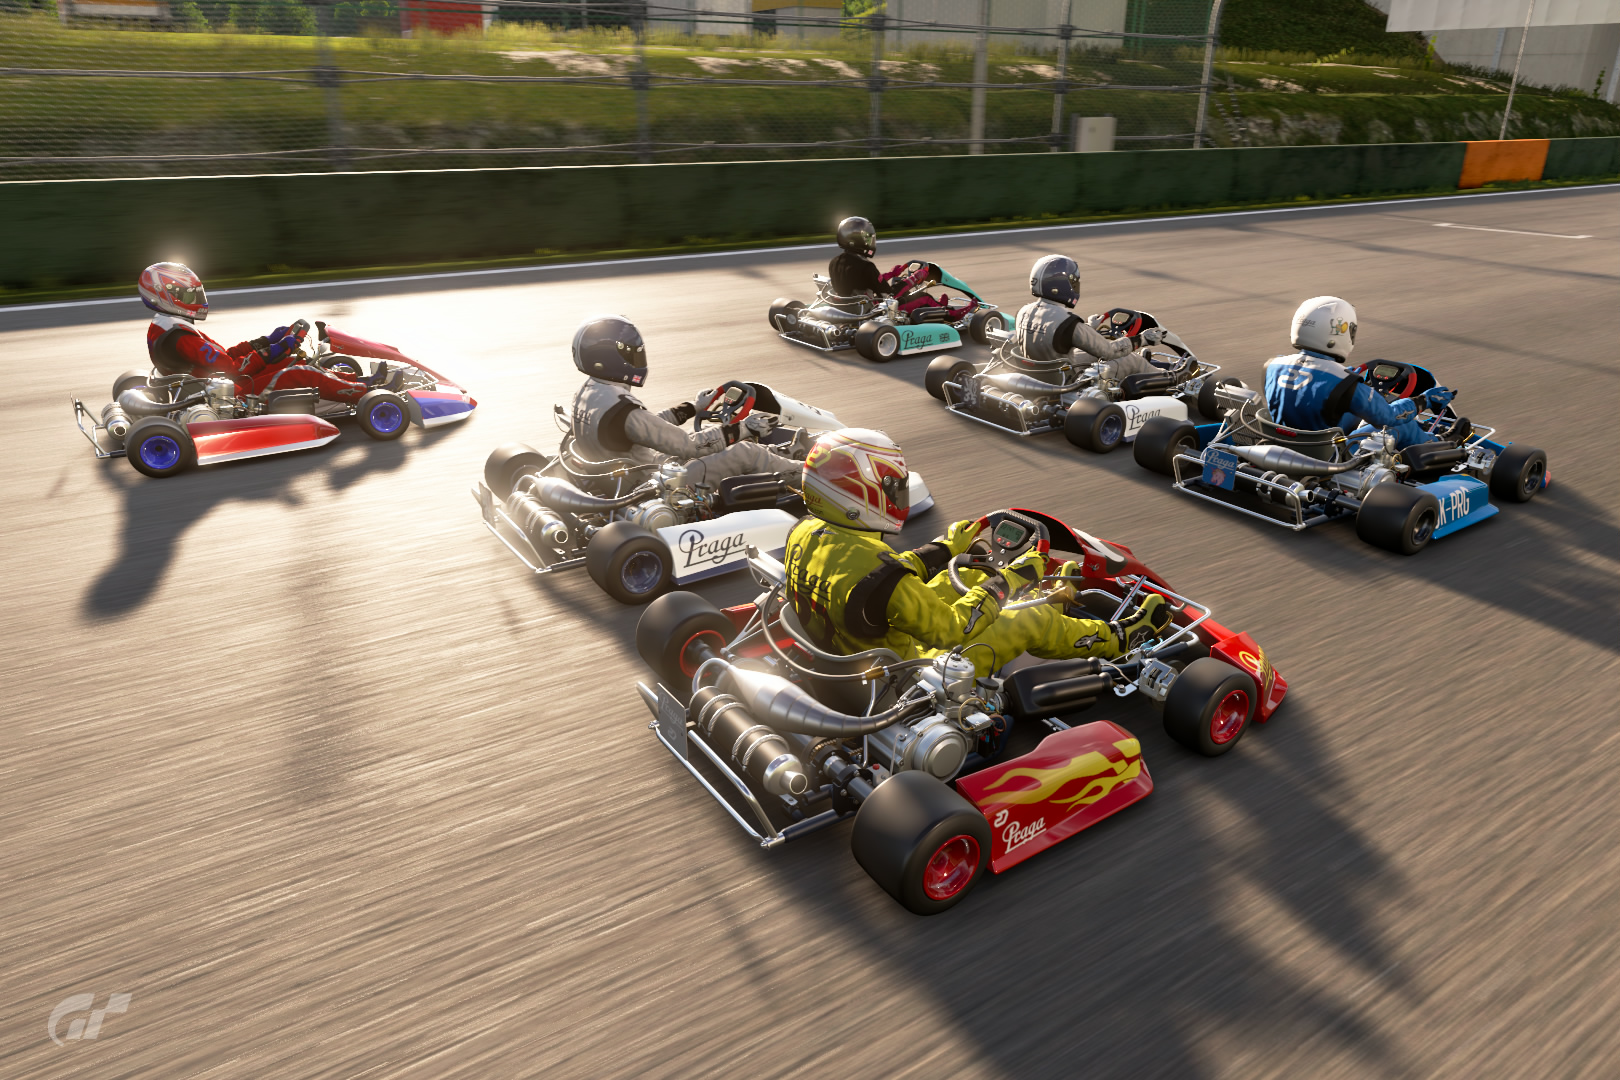 Praga | Praga launches online sim karting campaign: seeks driver to experience real R1 race car